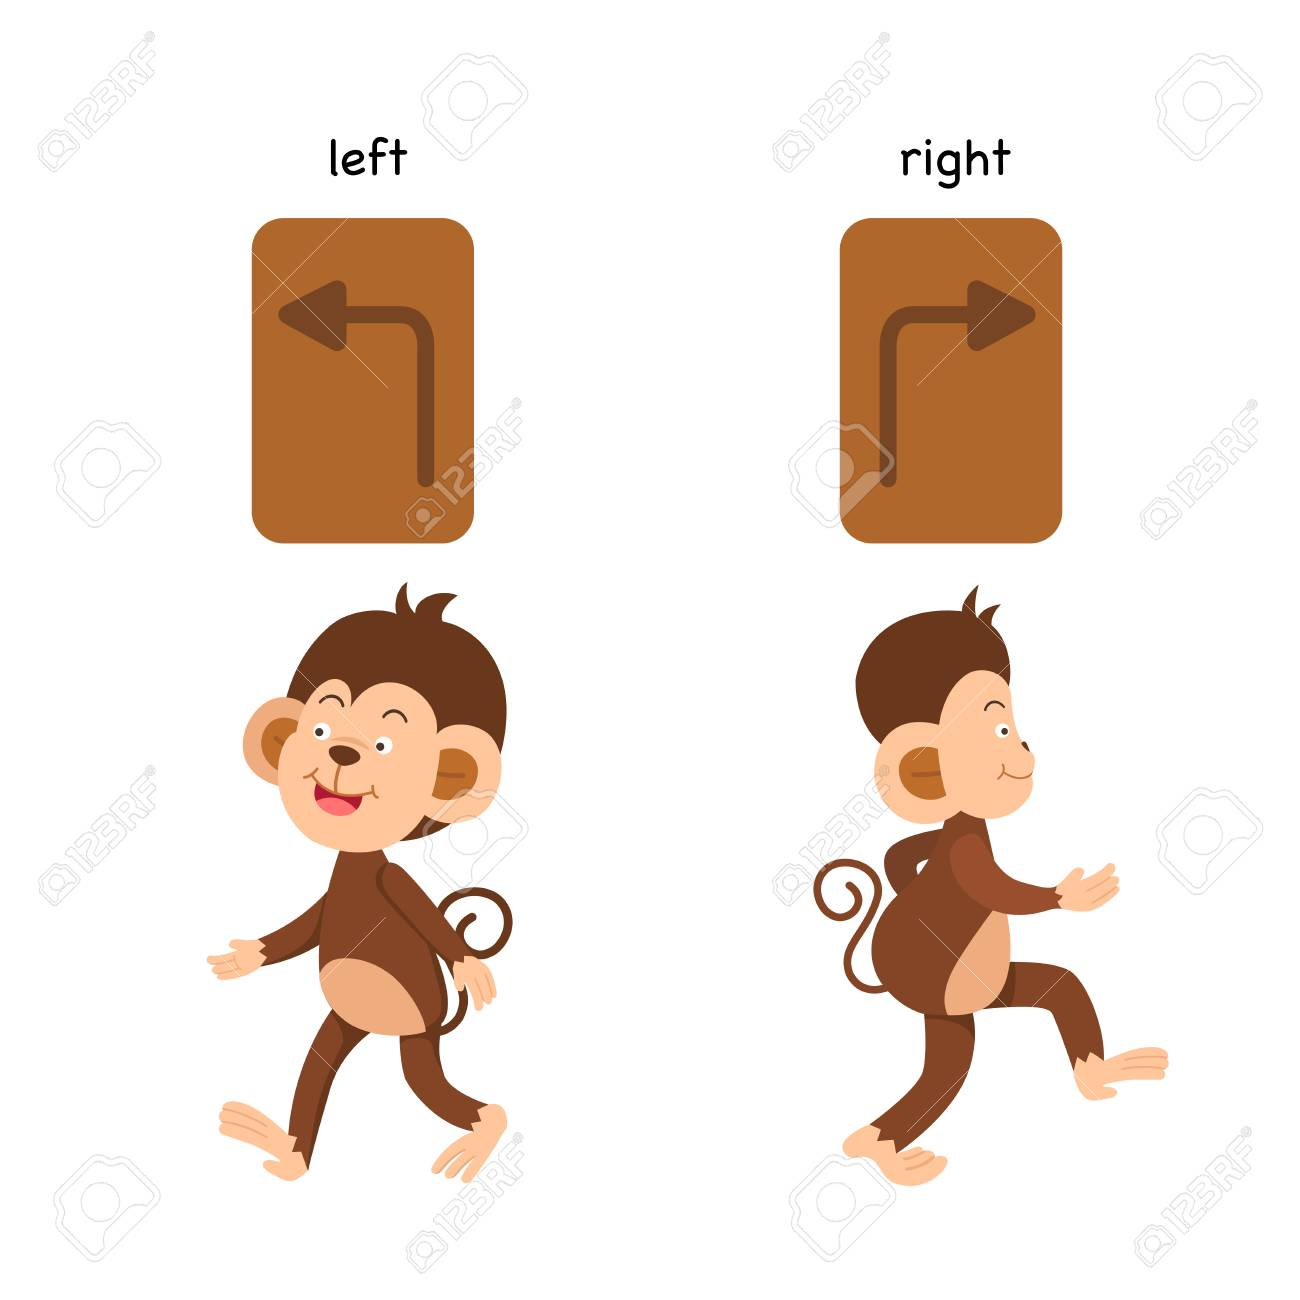 Opposite left and right vector illustration.